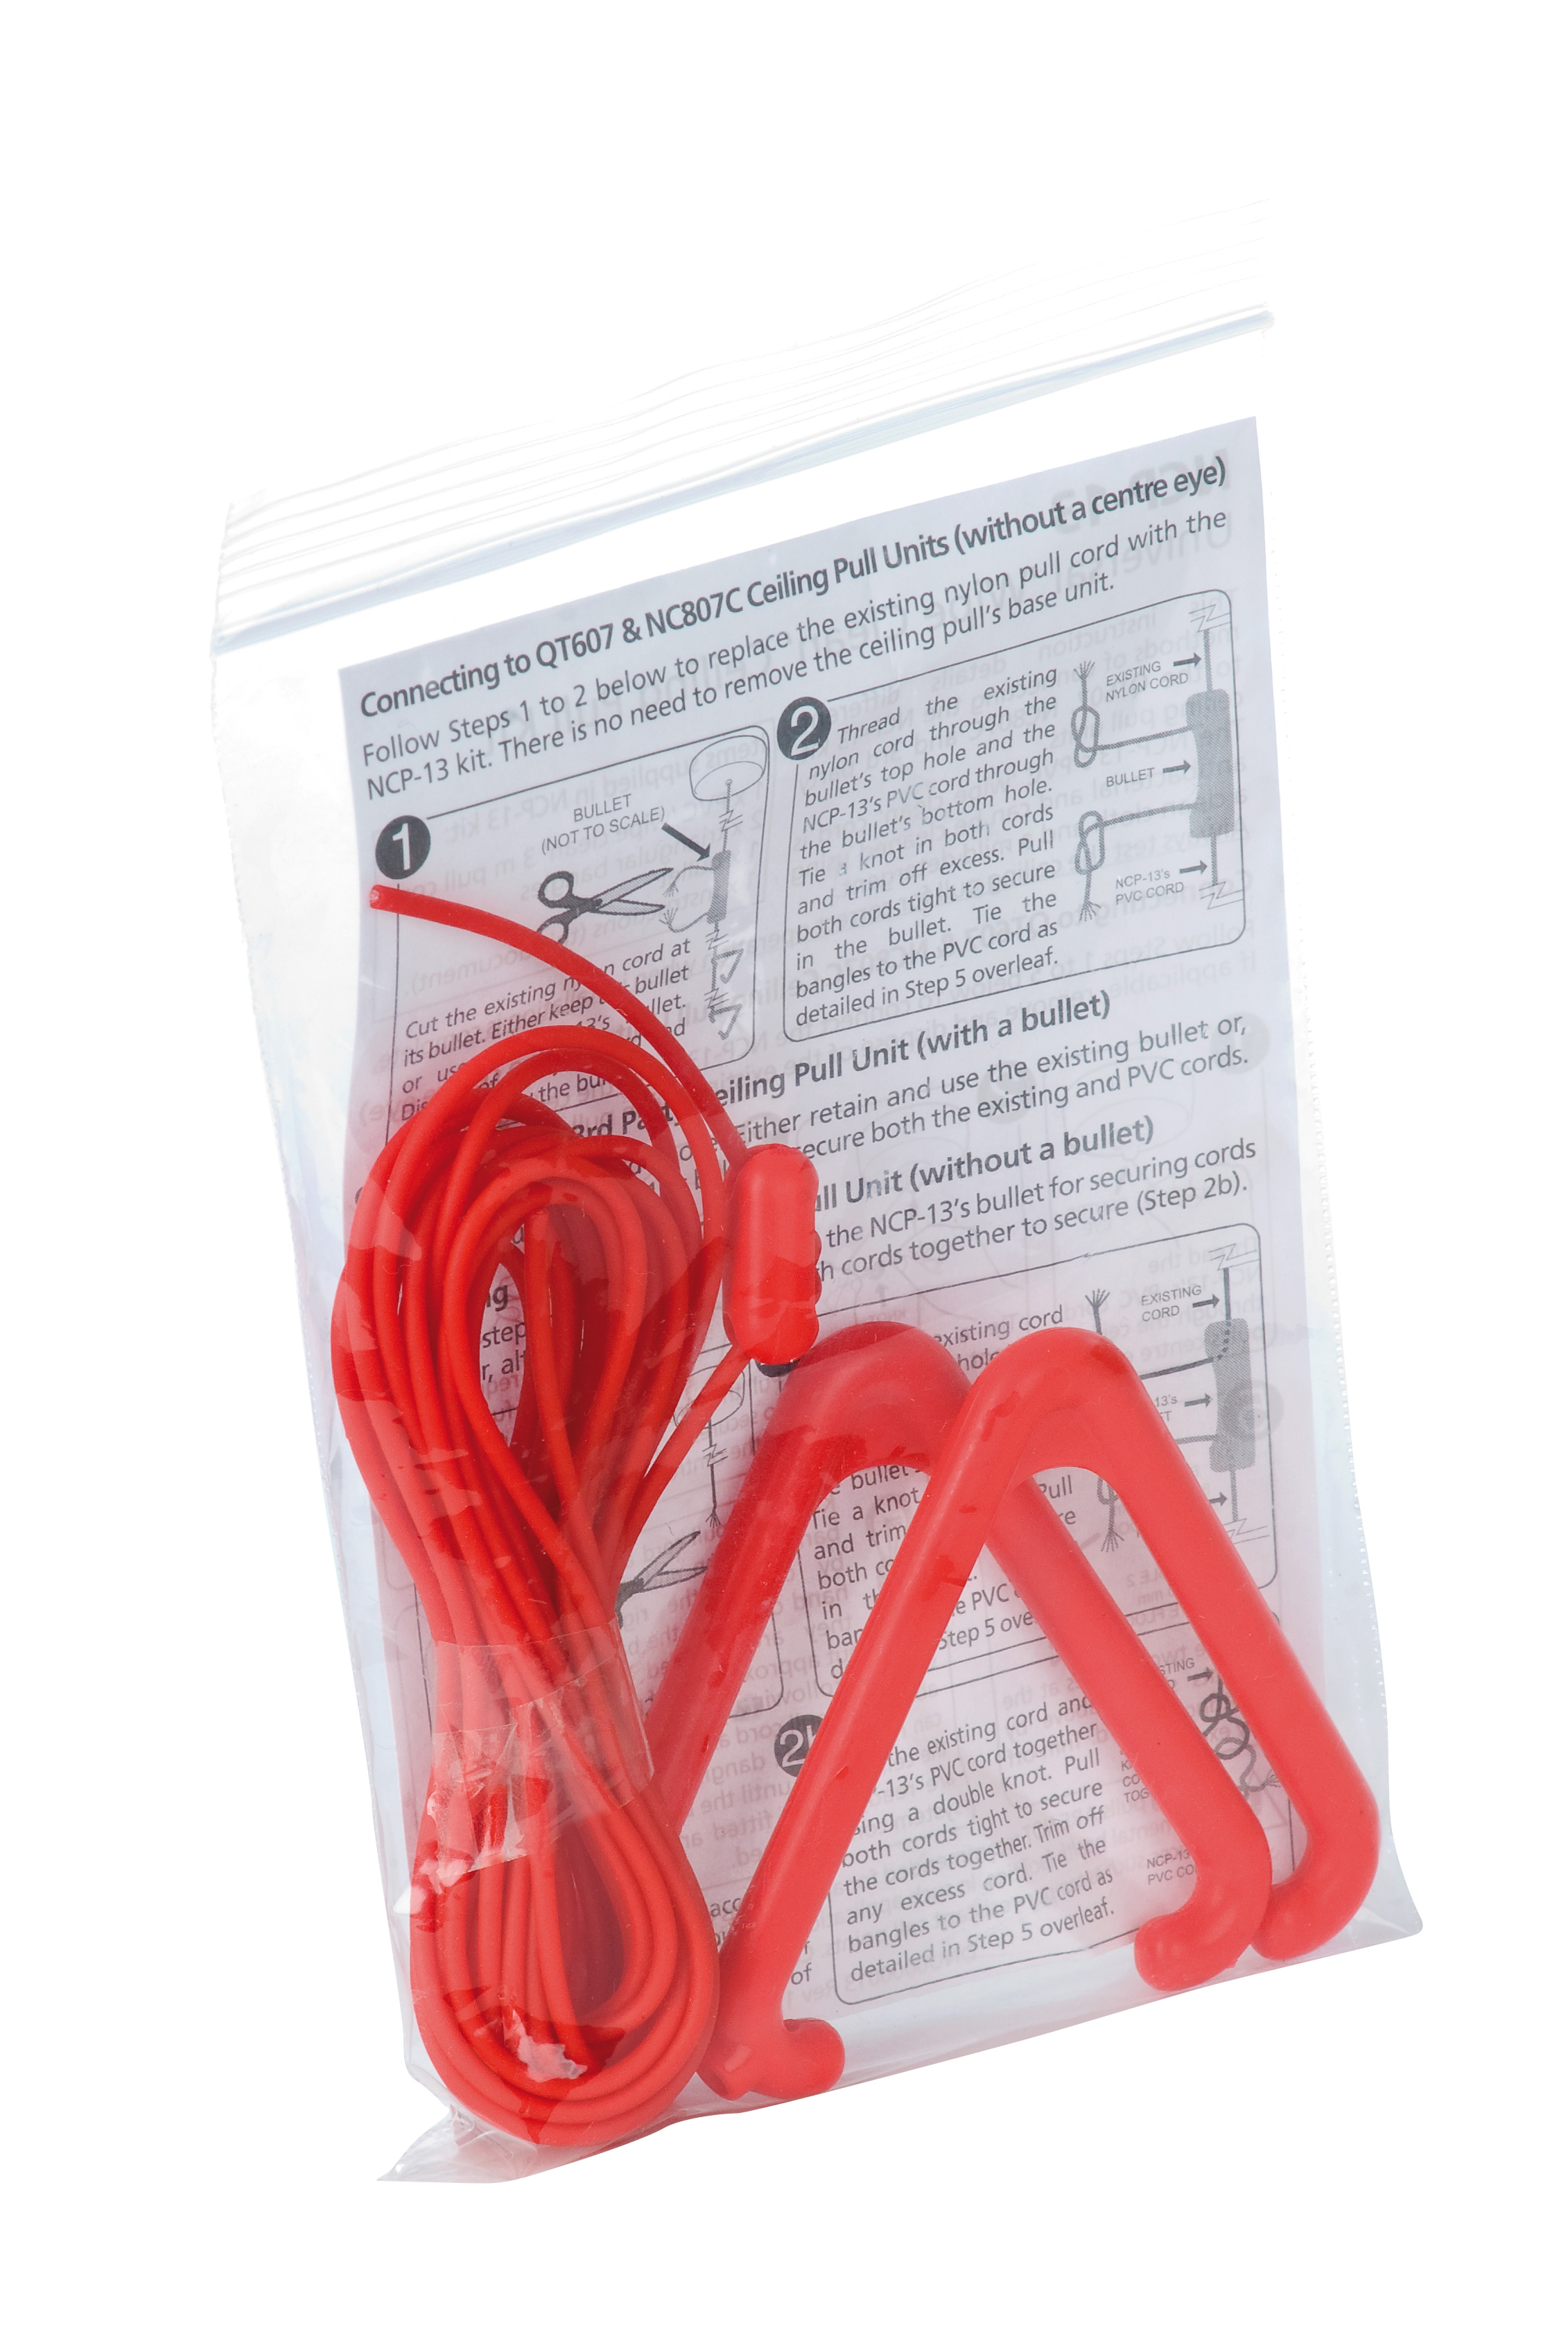 Anti Bacterial Wipe Clean Pull Cord Accessory Pack C Tec Fire Wiring A Light Switch Uk Ncp 13